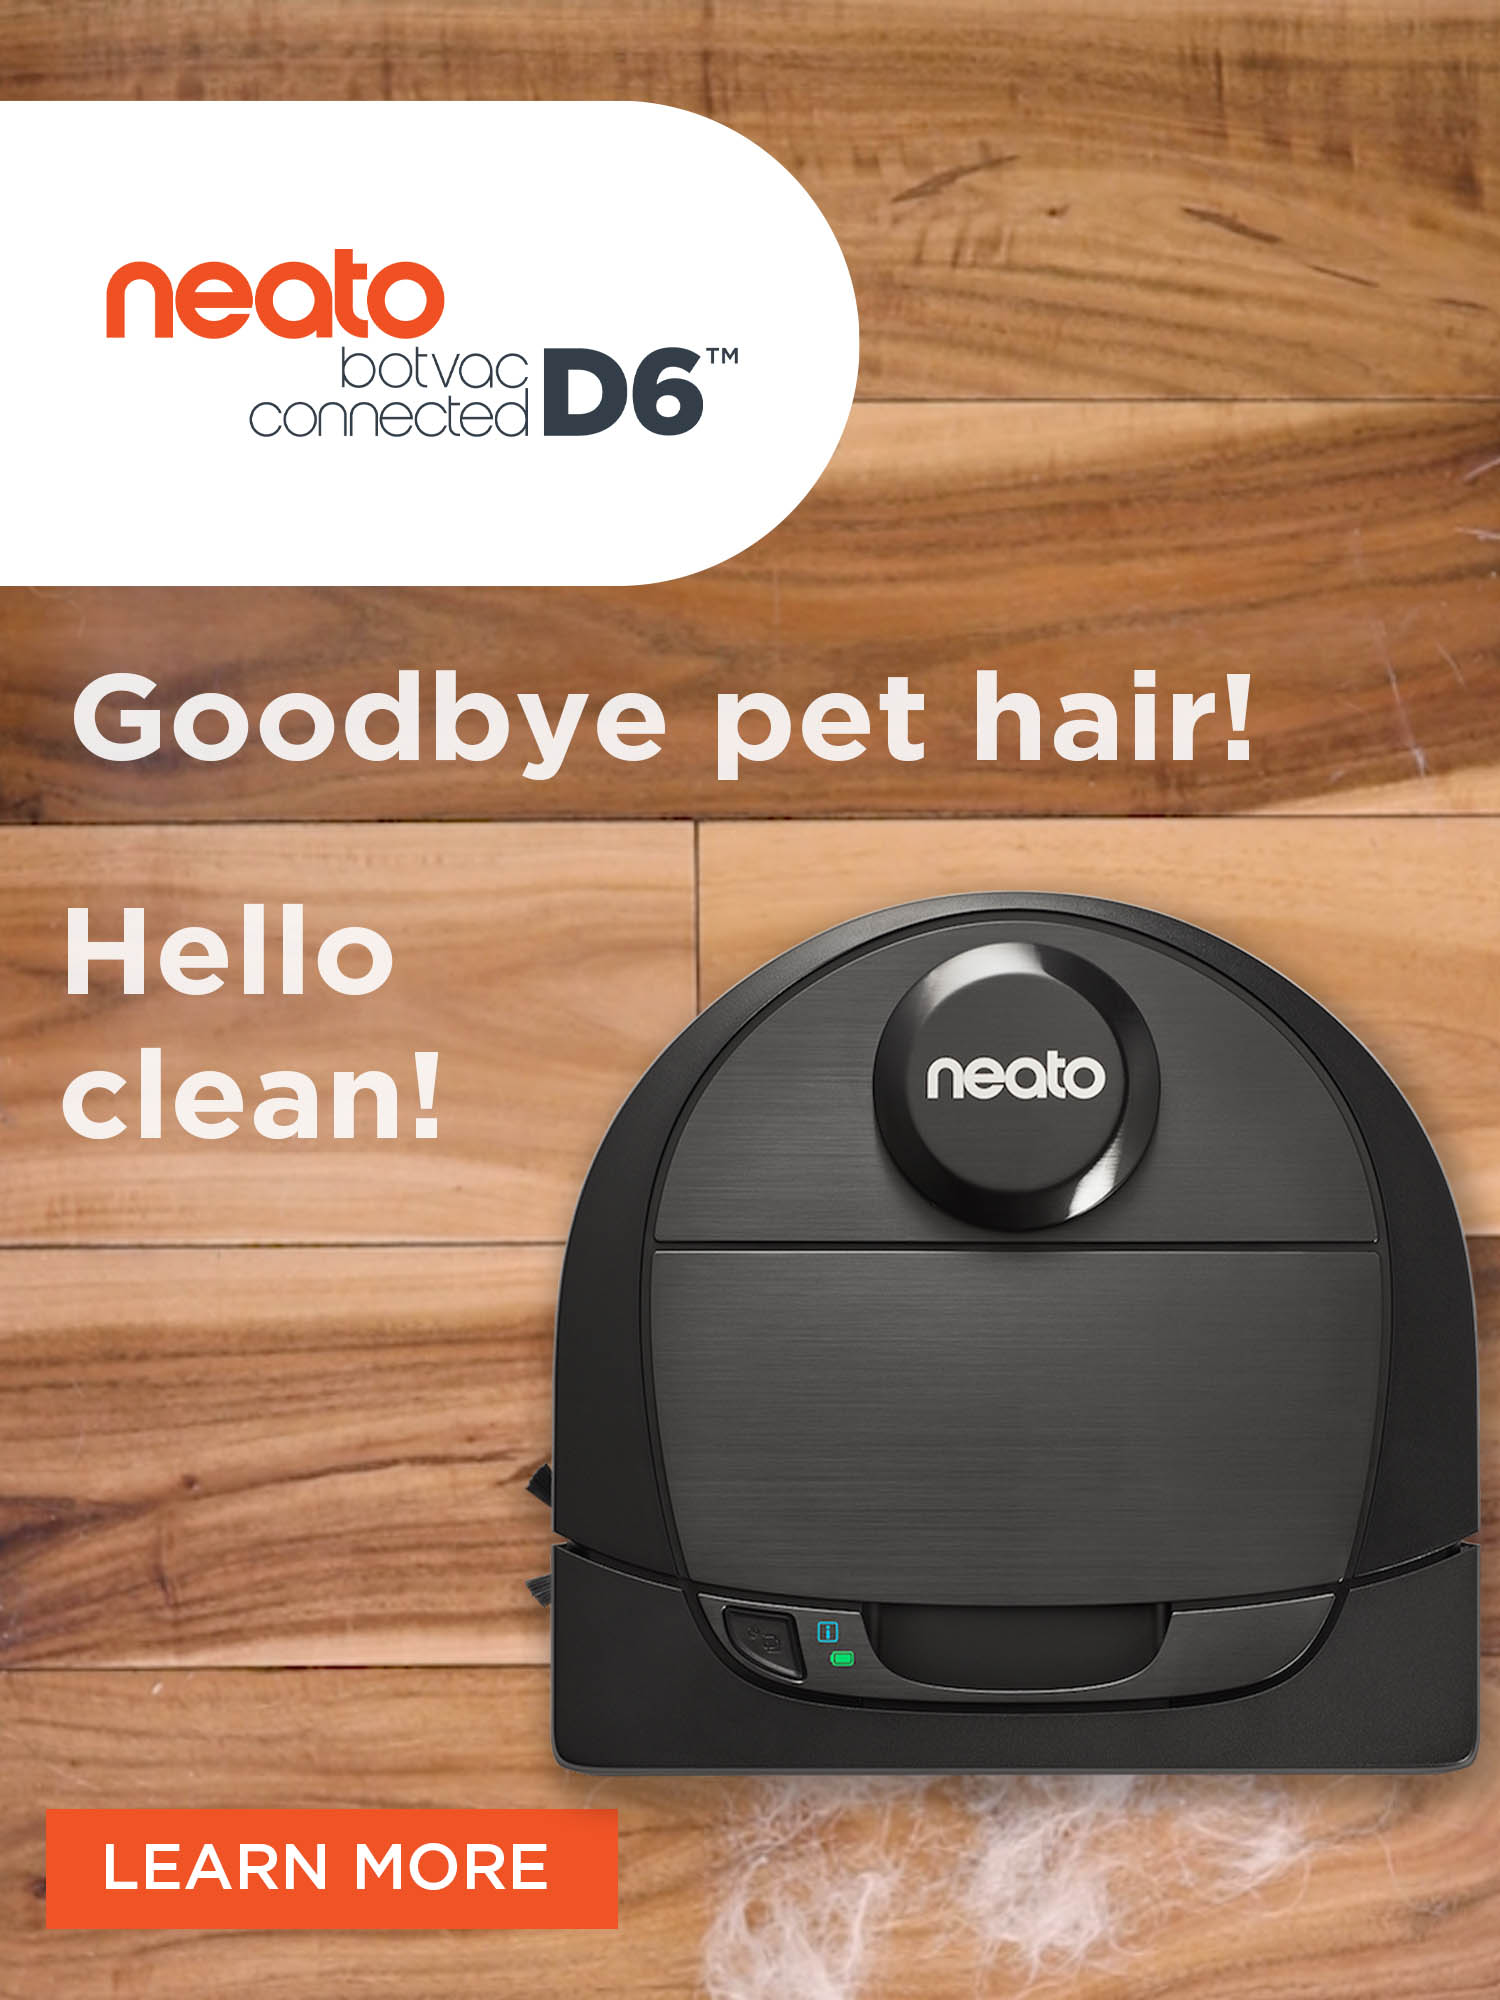 Neato Robotics | Smart, Powerful, Connected Robot Vacuums